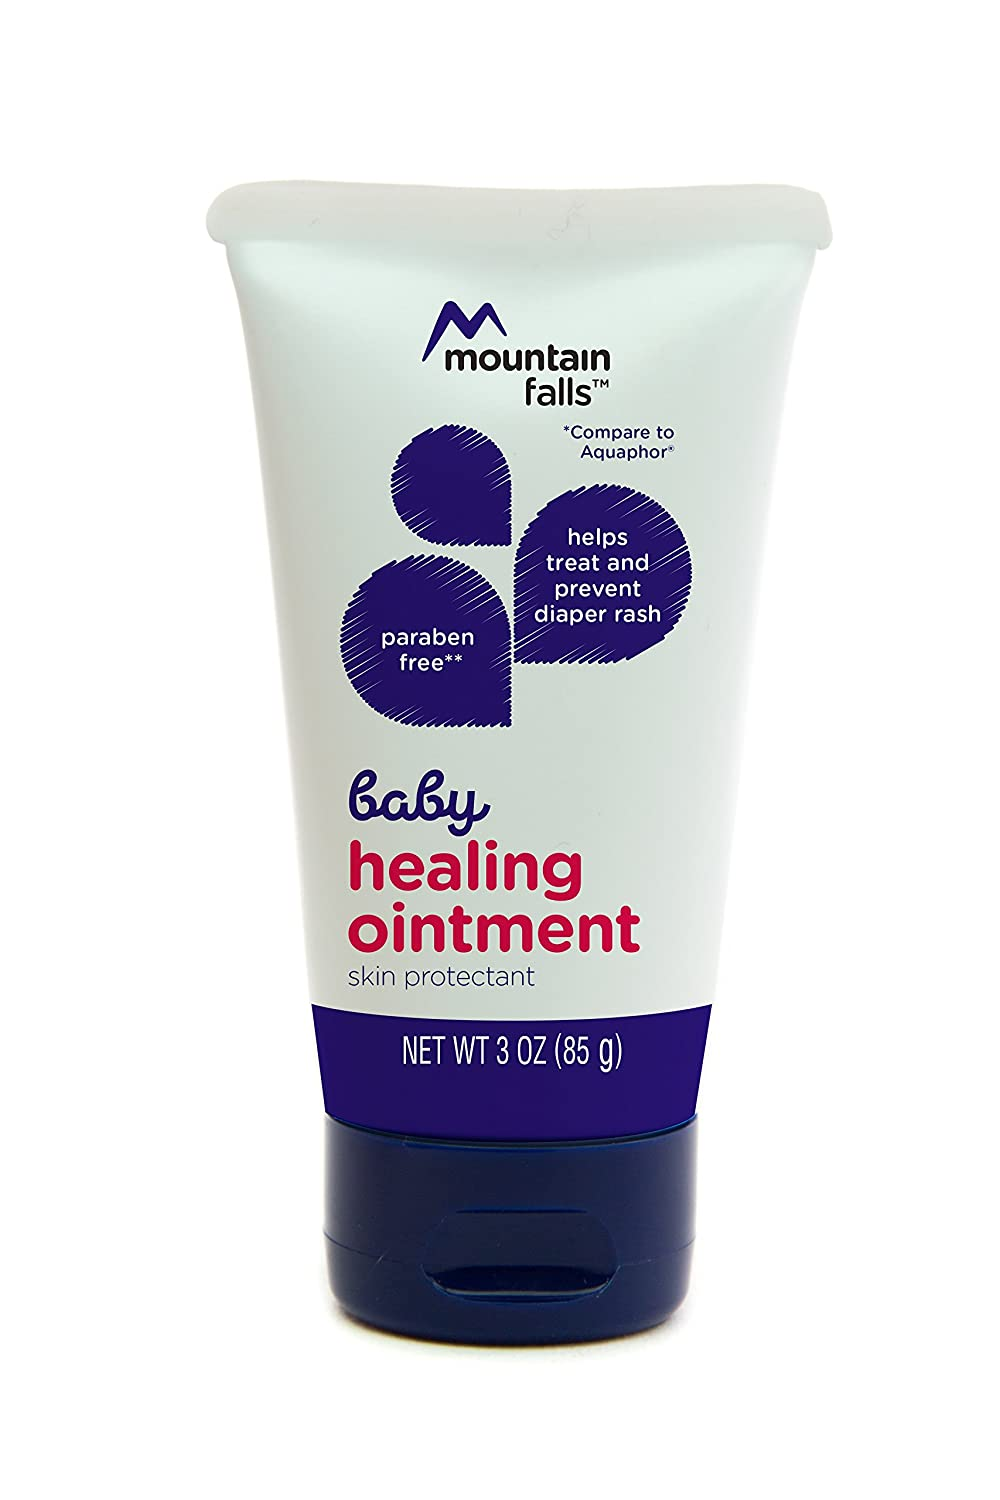 Mountain Falls Baby Healing Ointment for Diaper Rash, Compare to Aquaphor, 3 Ounce